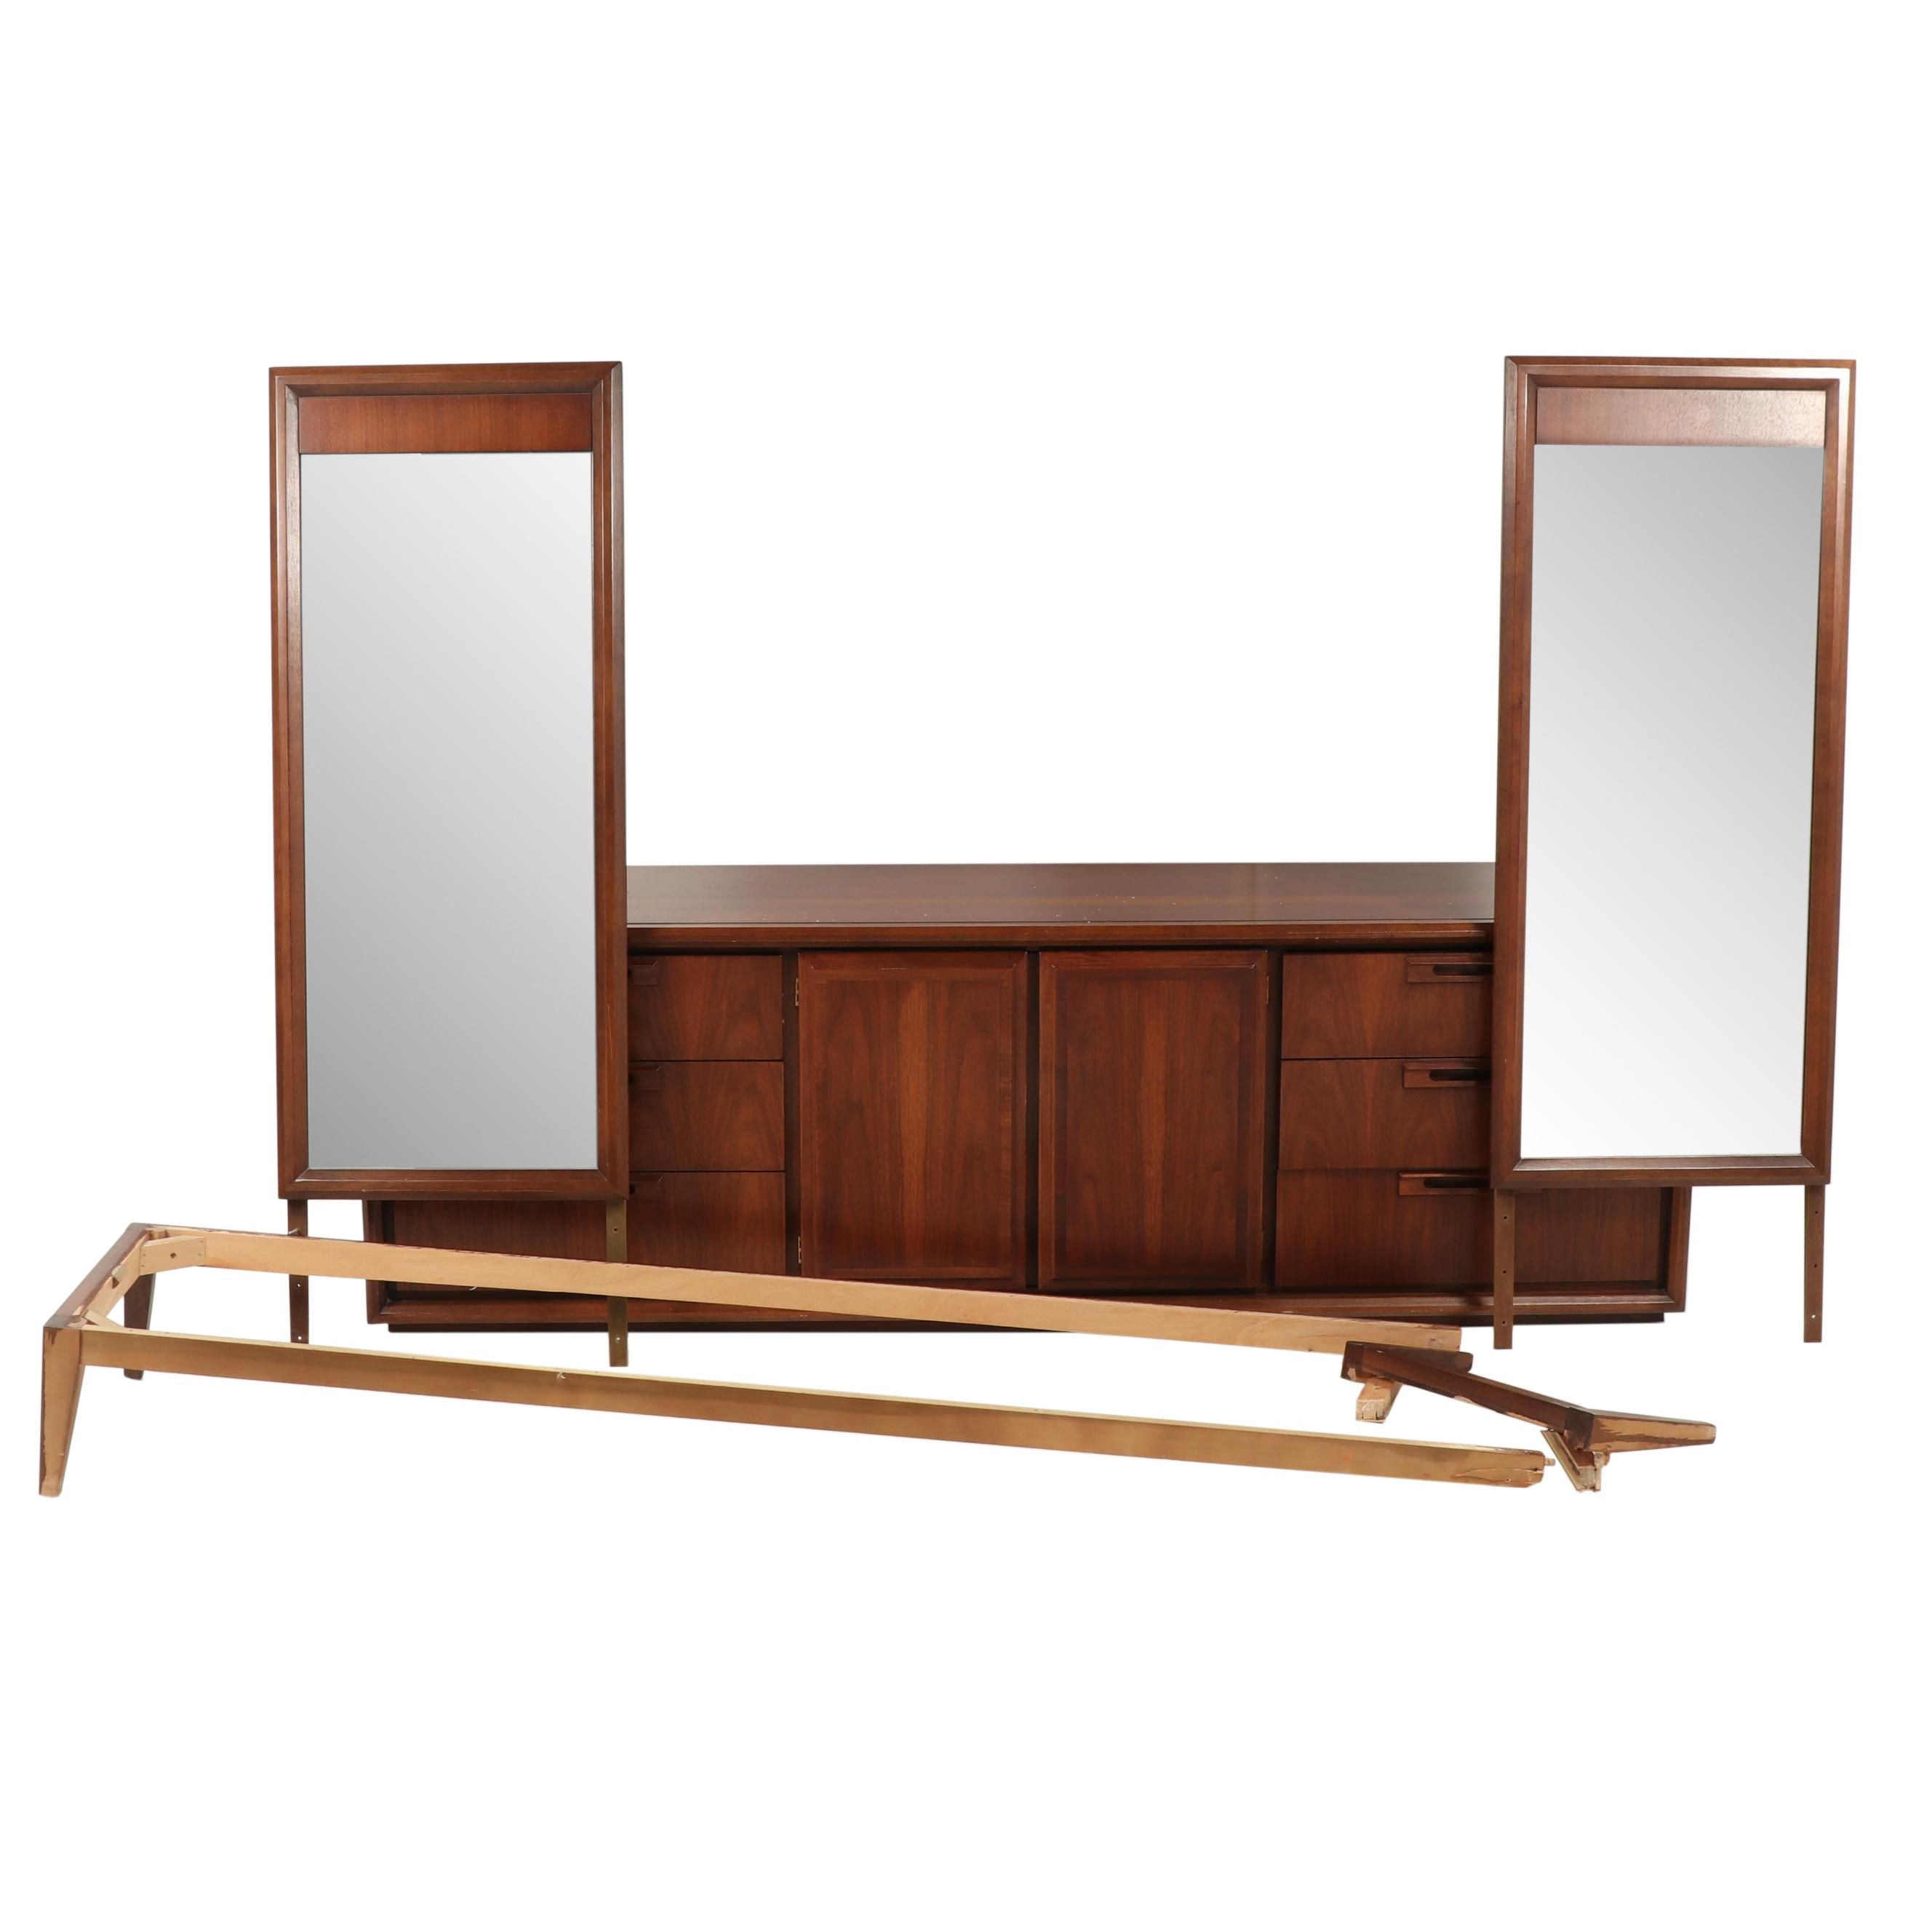 Wooden Dresser with Two Mirrors, Mid Century